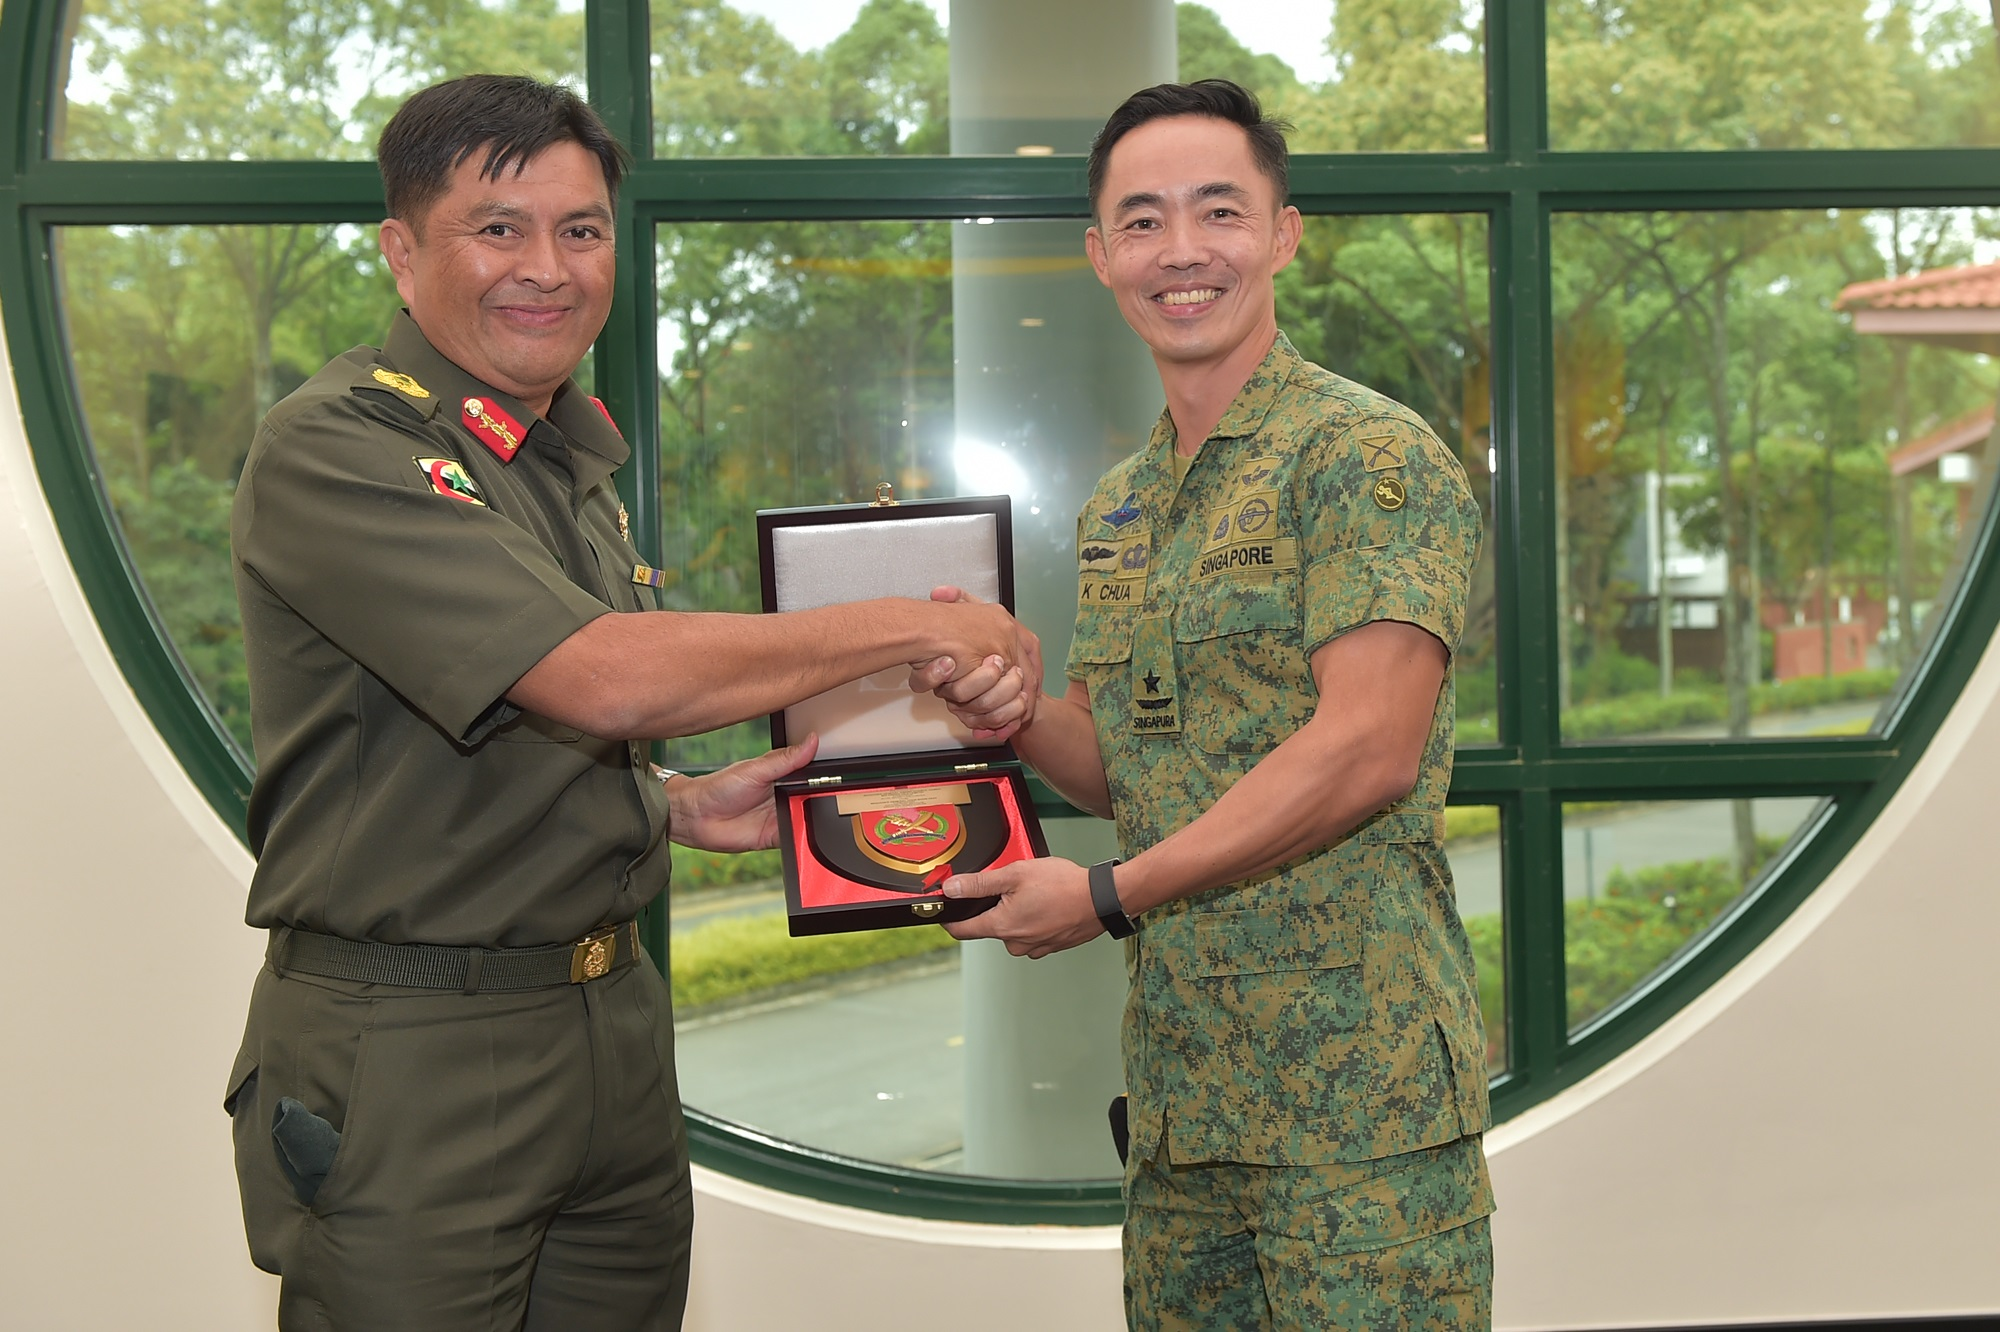 Commandant SAFTI Military Institute (MI) BG Chua Boon Keat (right) hosting BG Khairul Hamed (left) to a visit to SAFTI MI.